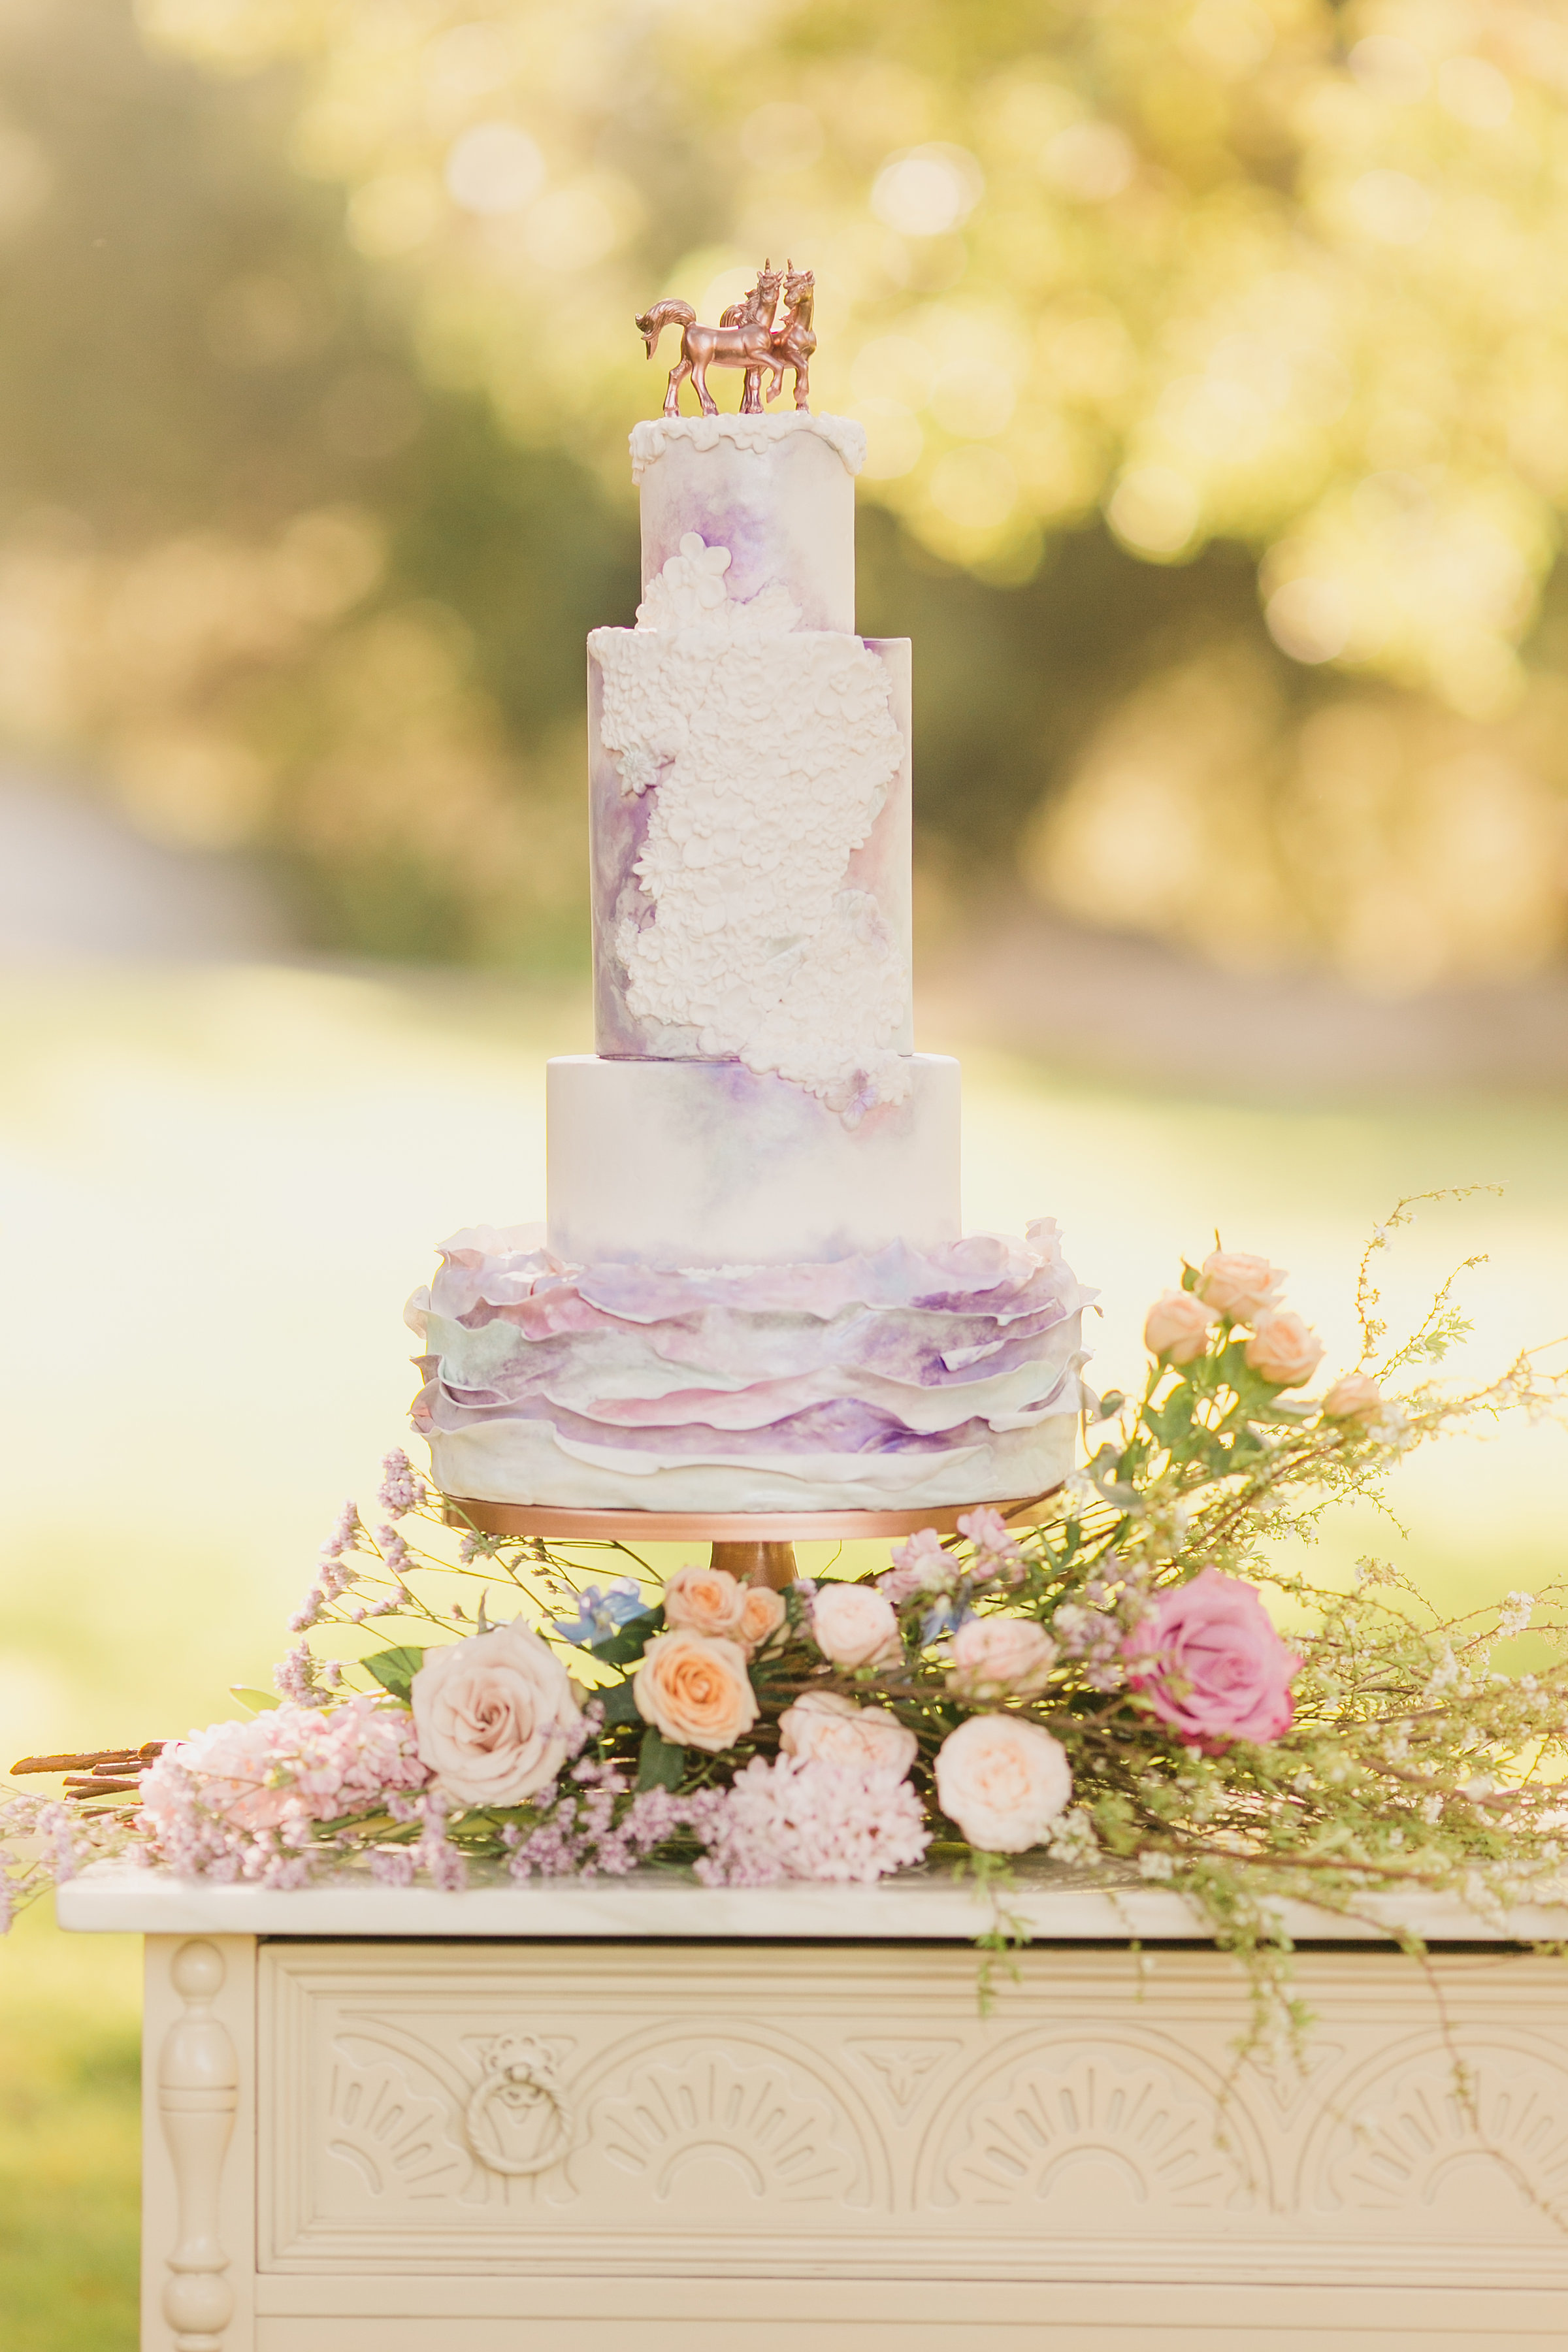 Rose-Gold-Unicorn-Styled-Shoot-with-Pastel-Colors-and-Magical-Details